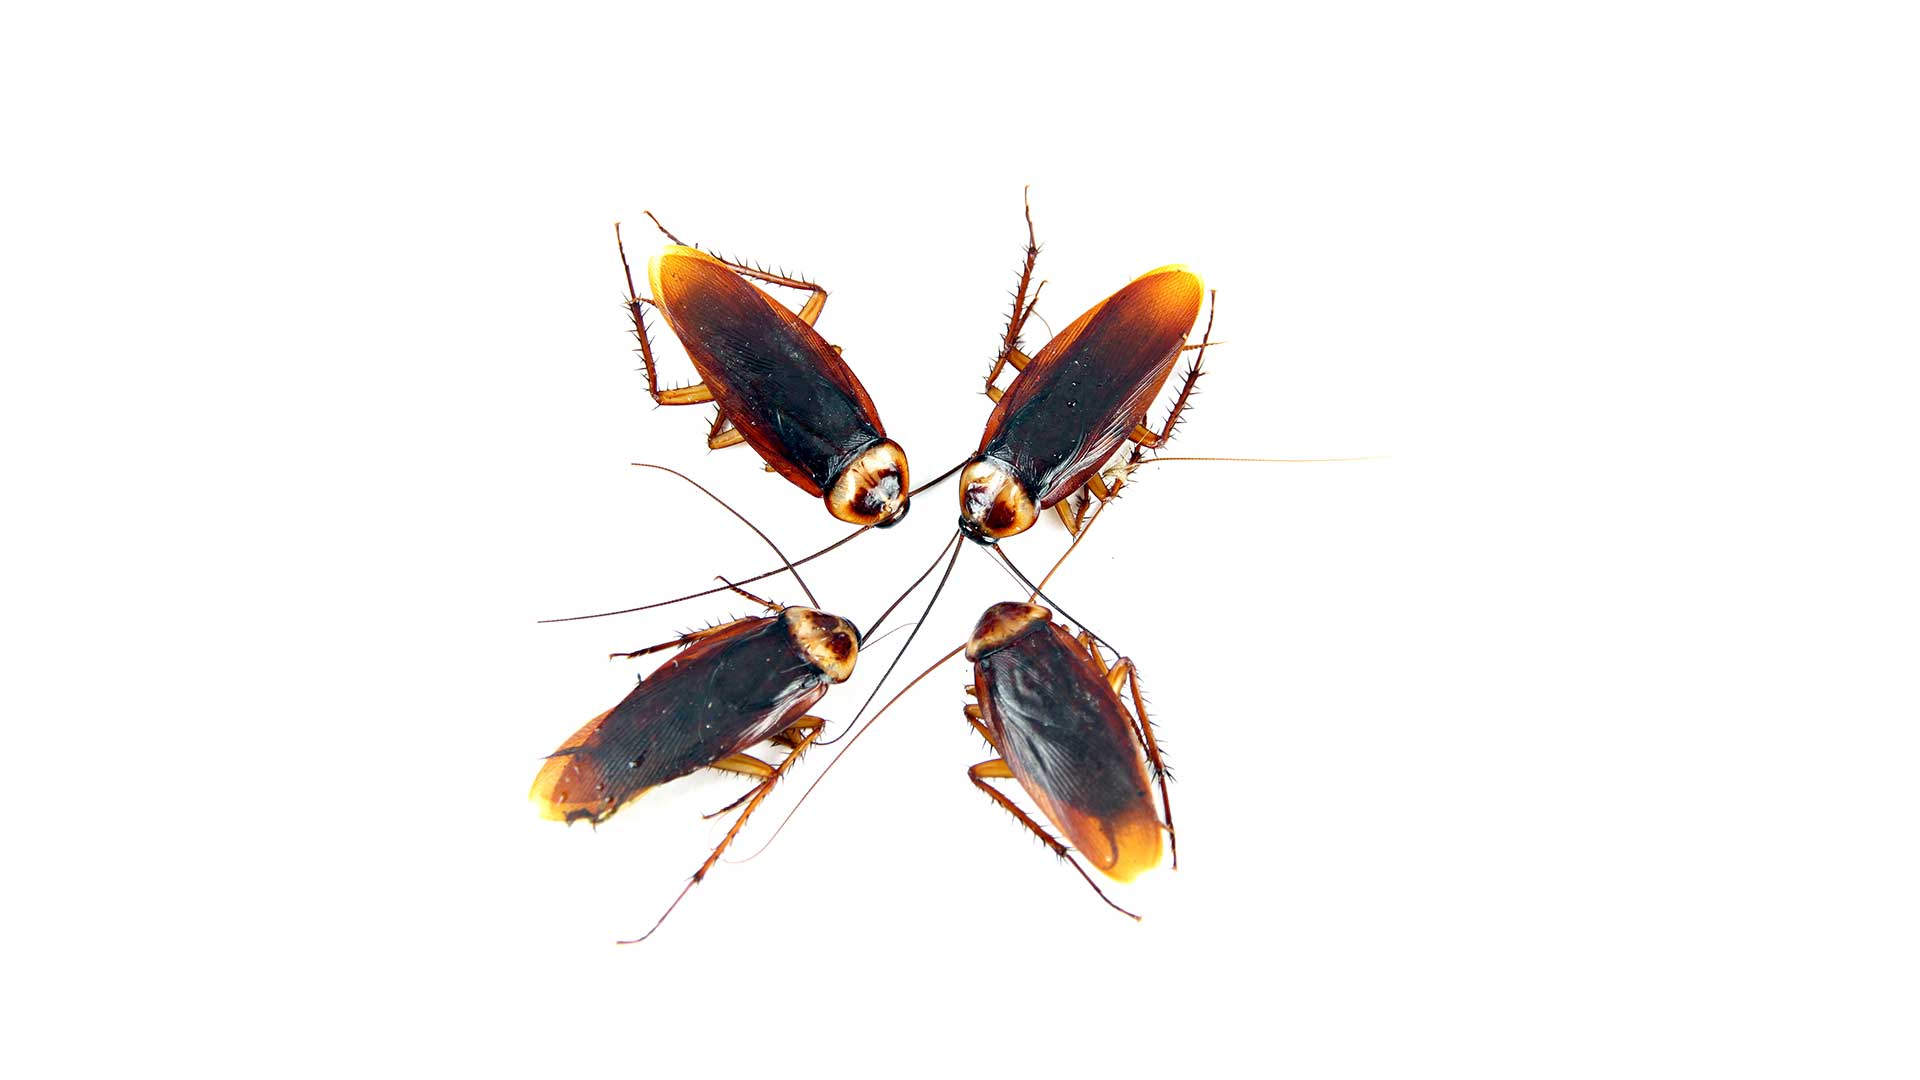 Extermination of roach infestation is a One Two Tree strength.